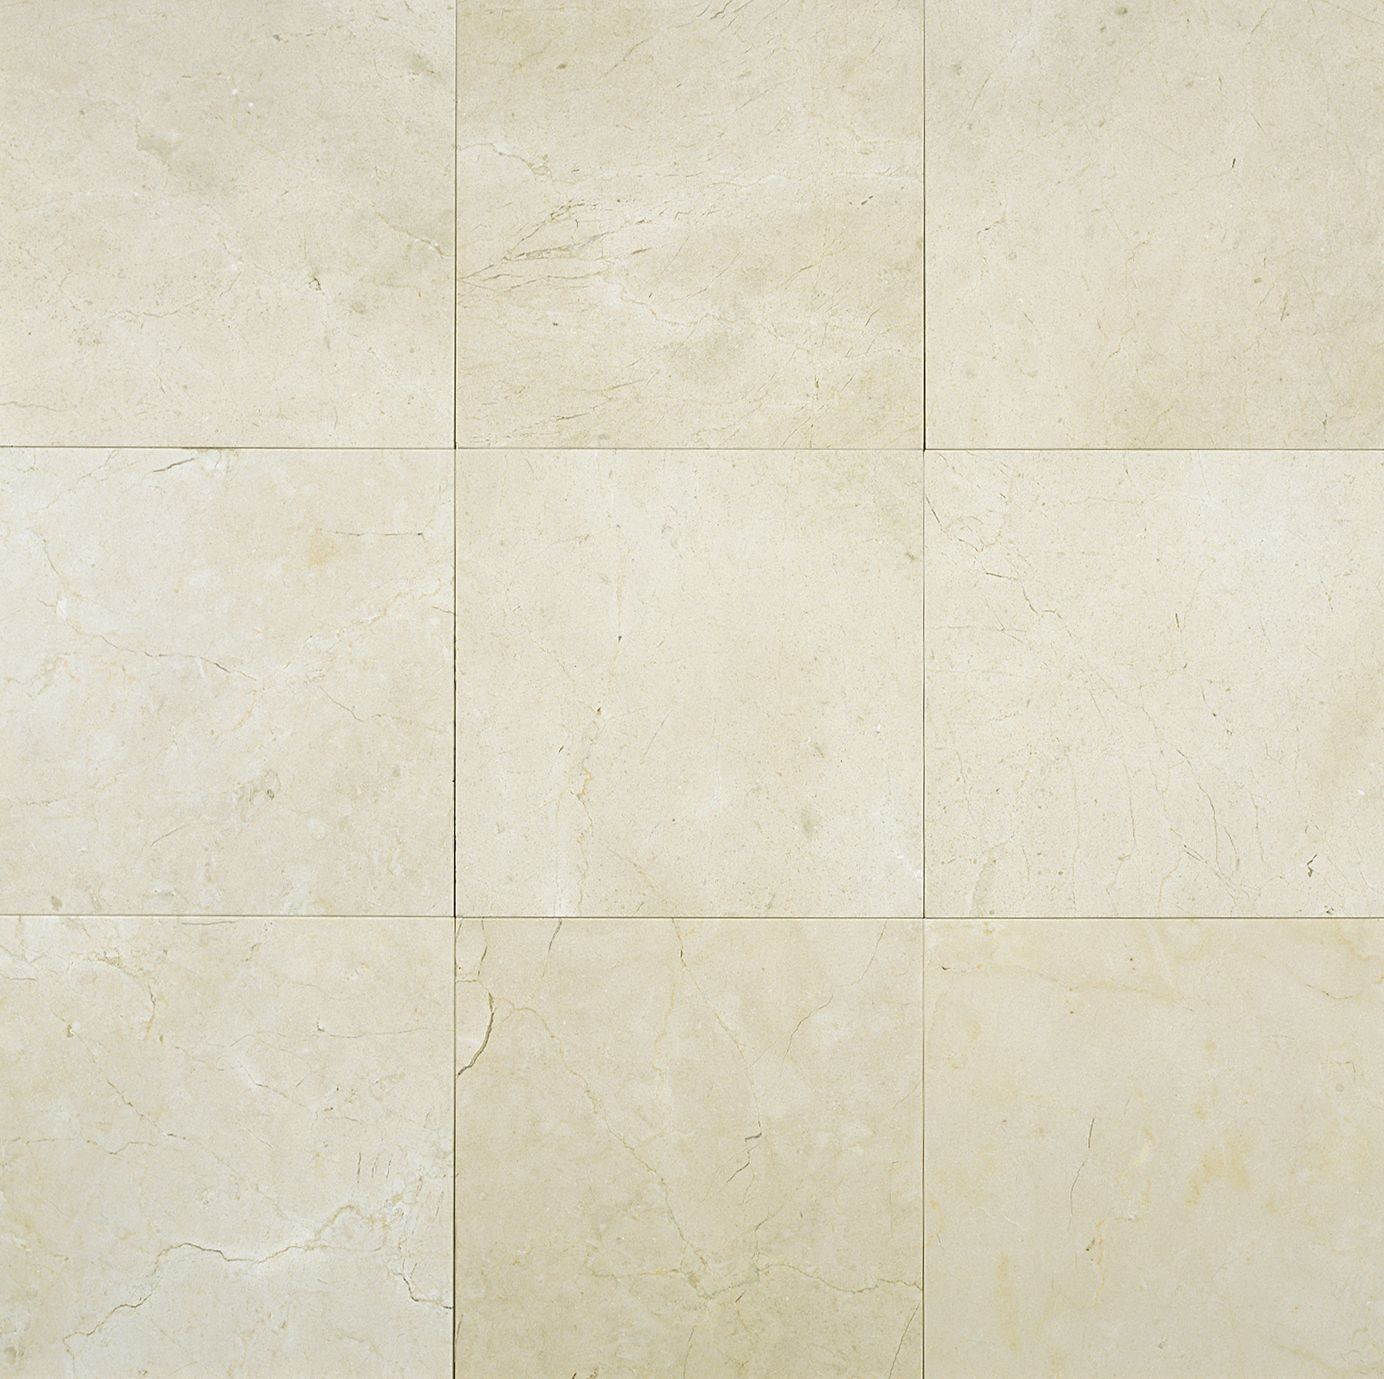 Crema marfil classico 6x6 marble tile polished for 12x12 floor tile designs